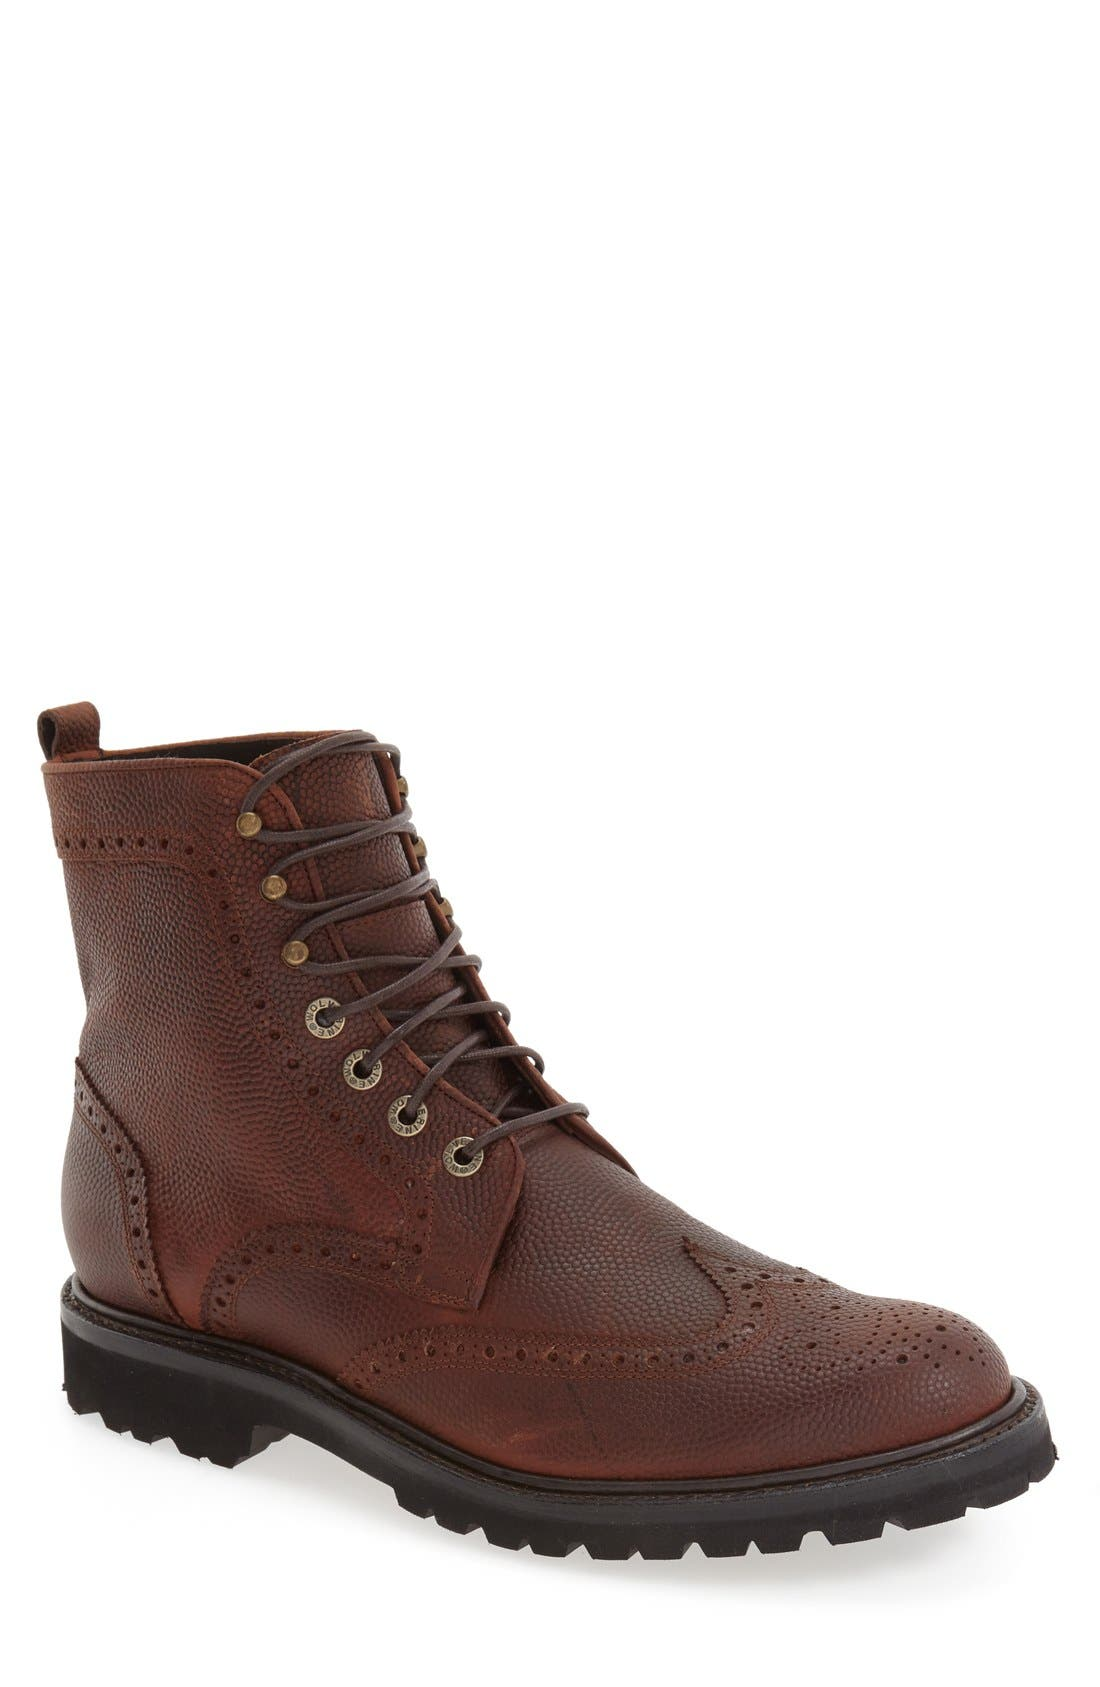 WOLVERINE 'Percy' Wingtip Boot, Main, color, 200